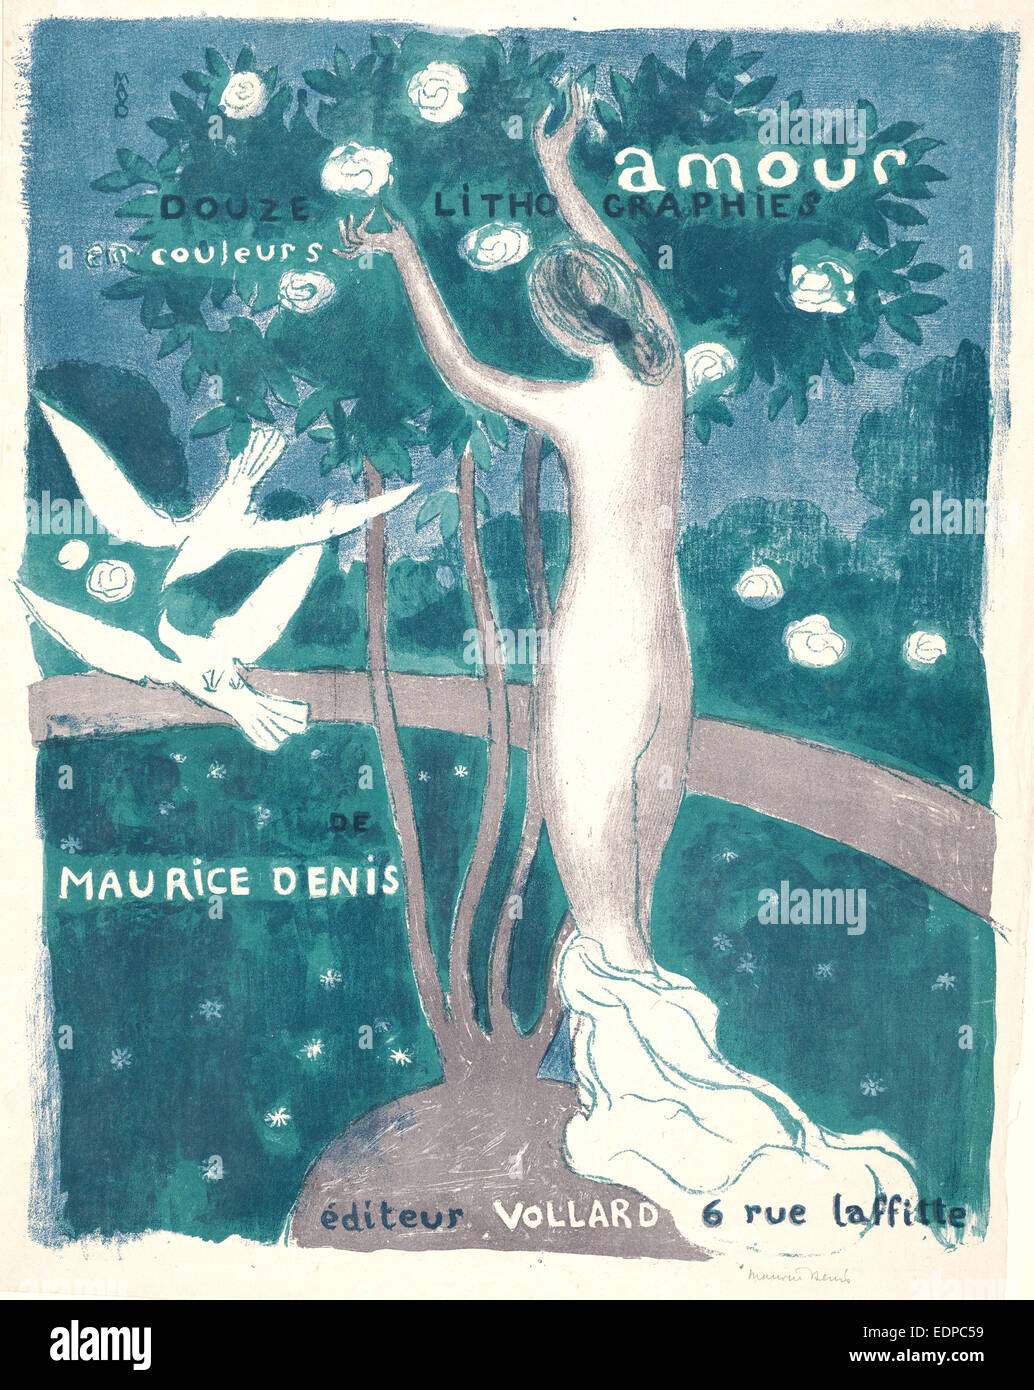 Maurice Denis (French, 1870 - 1943). Love (Amour), 1892-1899. Lithograph printed in three colors (grey, green, and - Stock Image